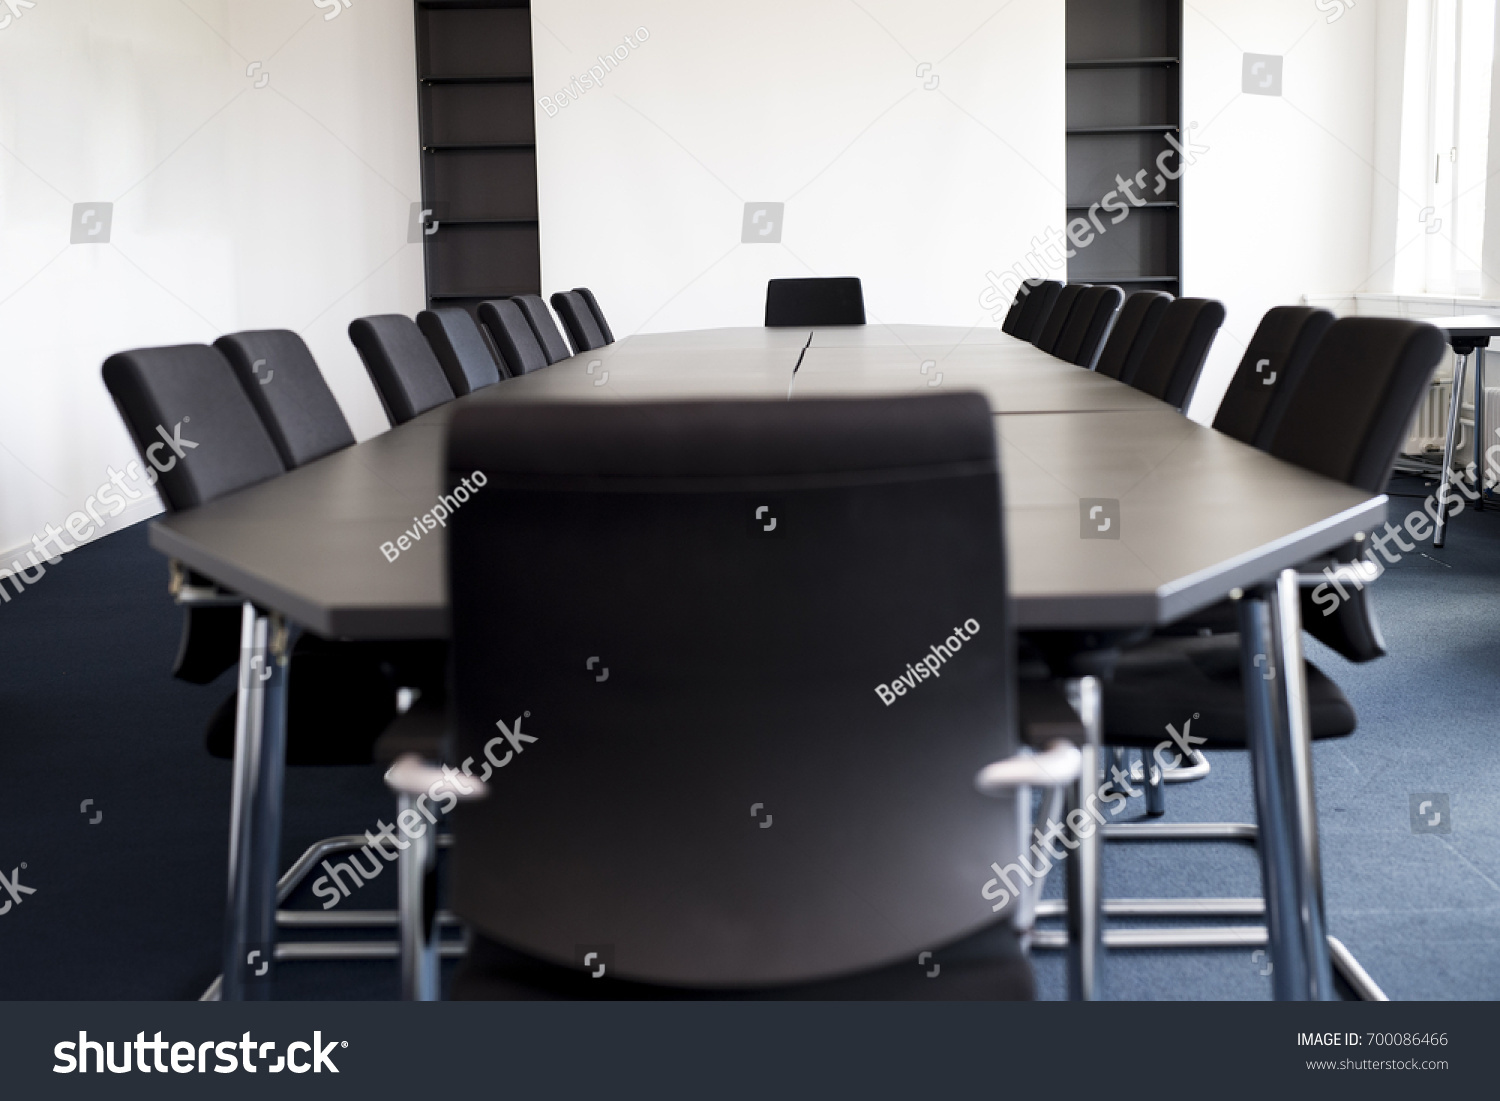 Meeting Room Tables Conference Table Empty Meeting Room Stock Photo Edit Now